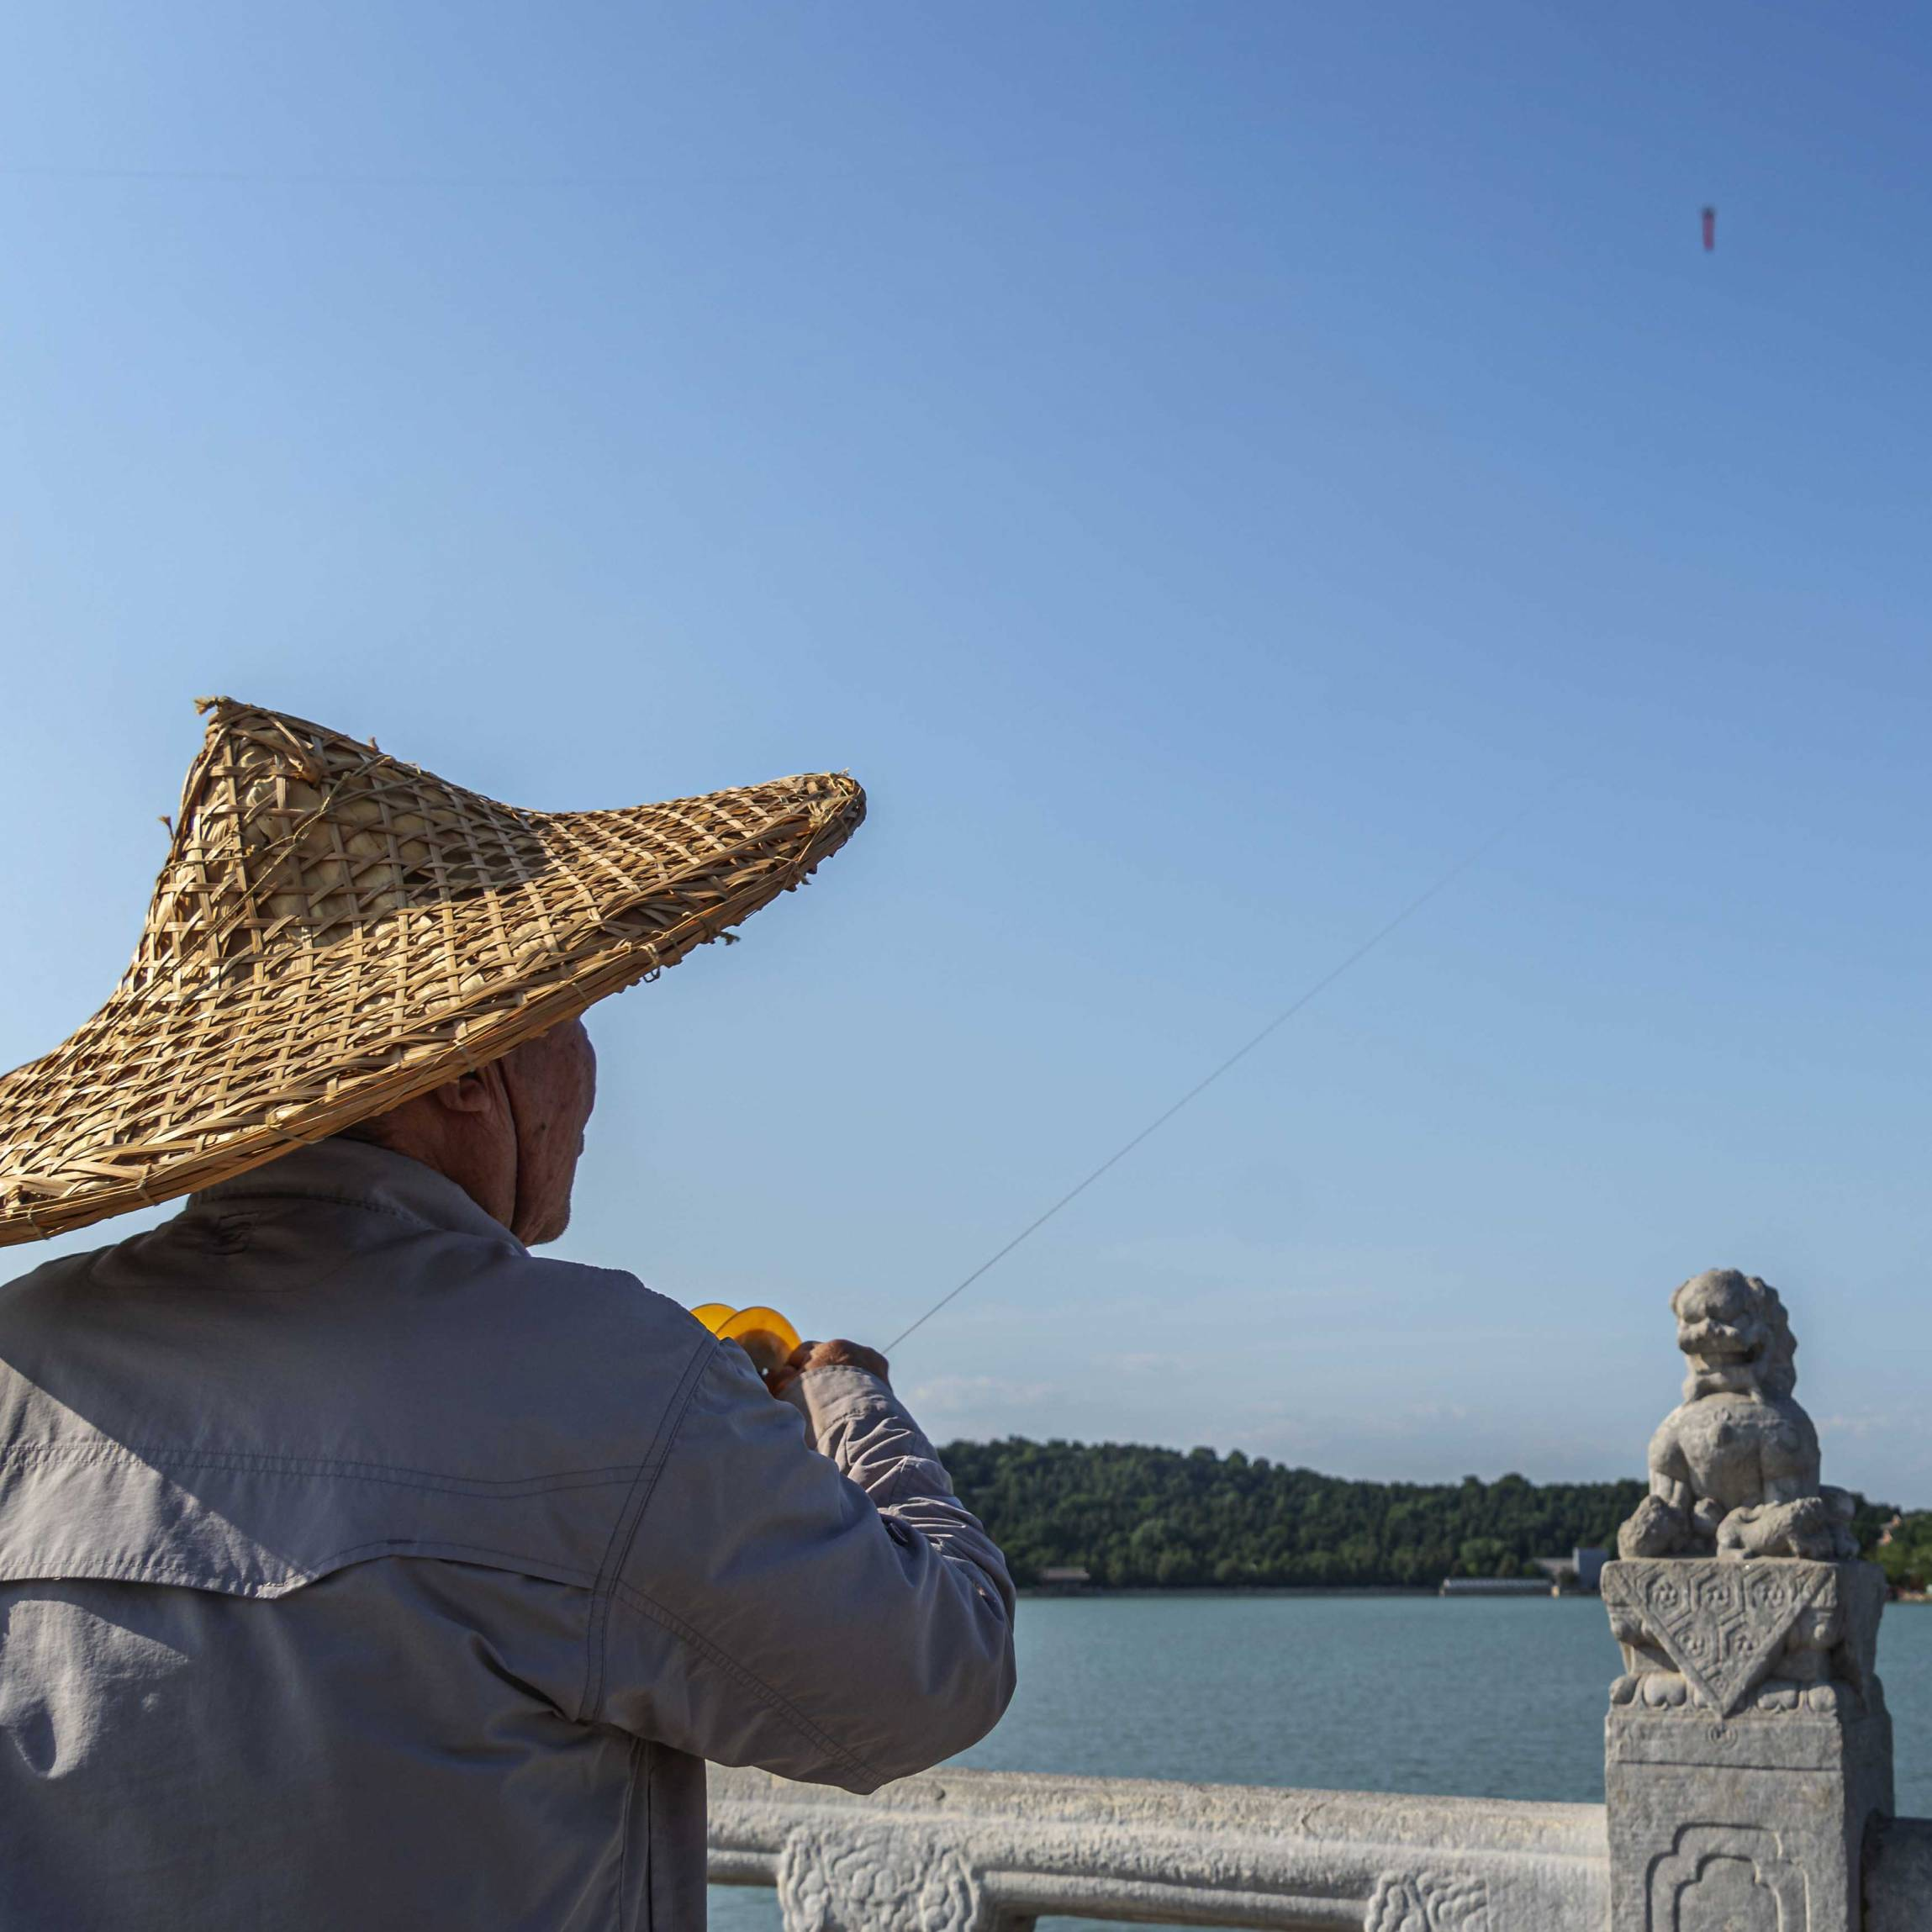 Kite flying at the summer palace in Beijing